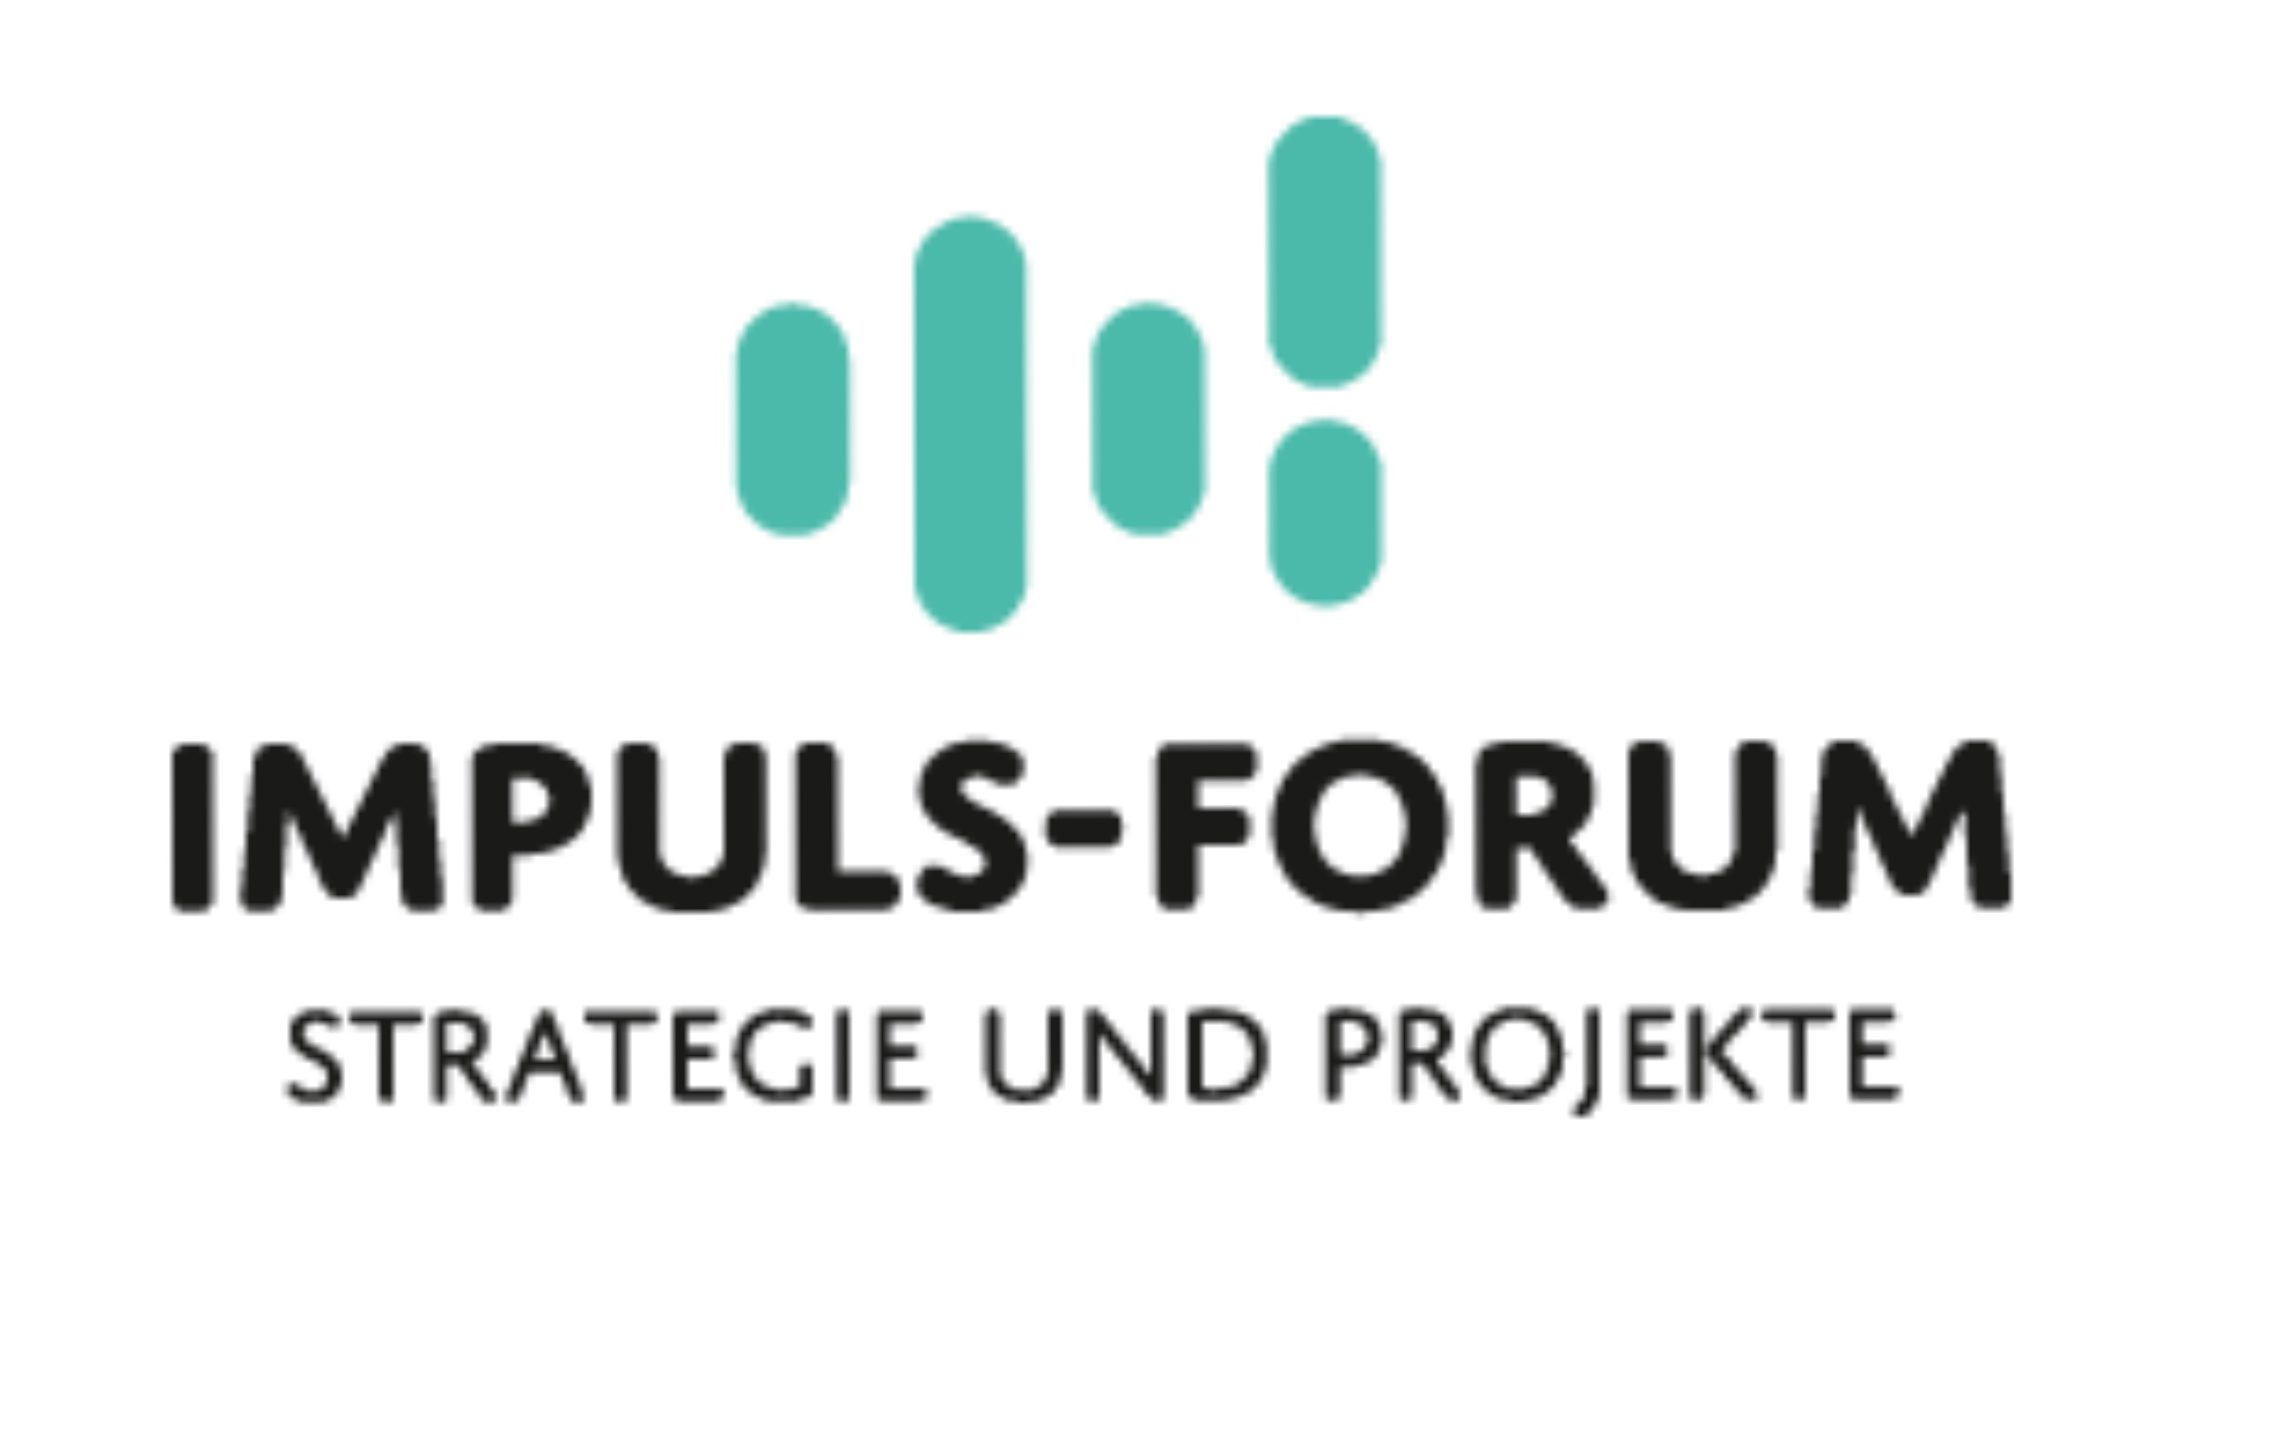 Impuls-Forum 2019